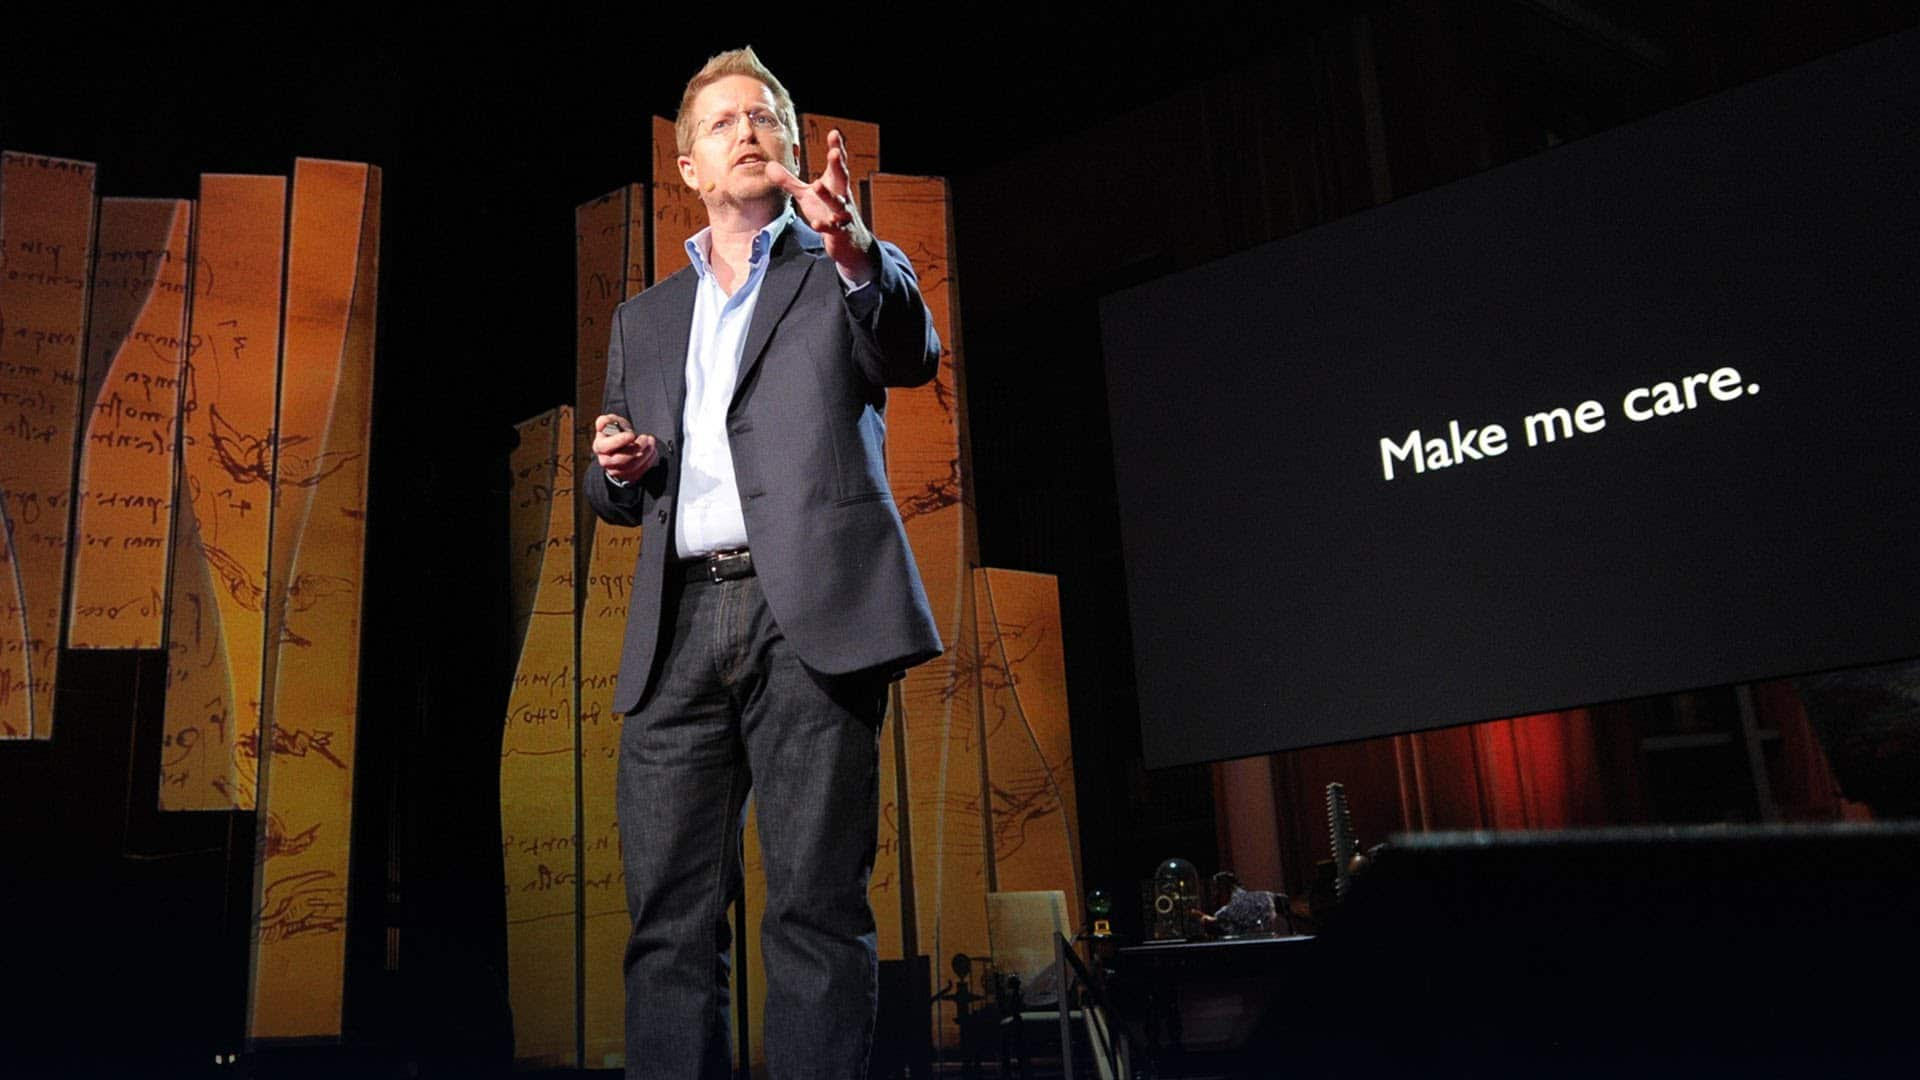 TED Talk Marketing - Andrew Stanton